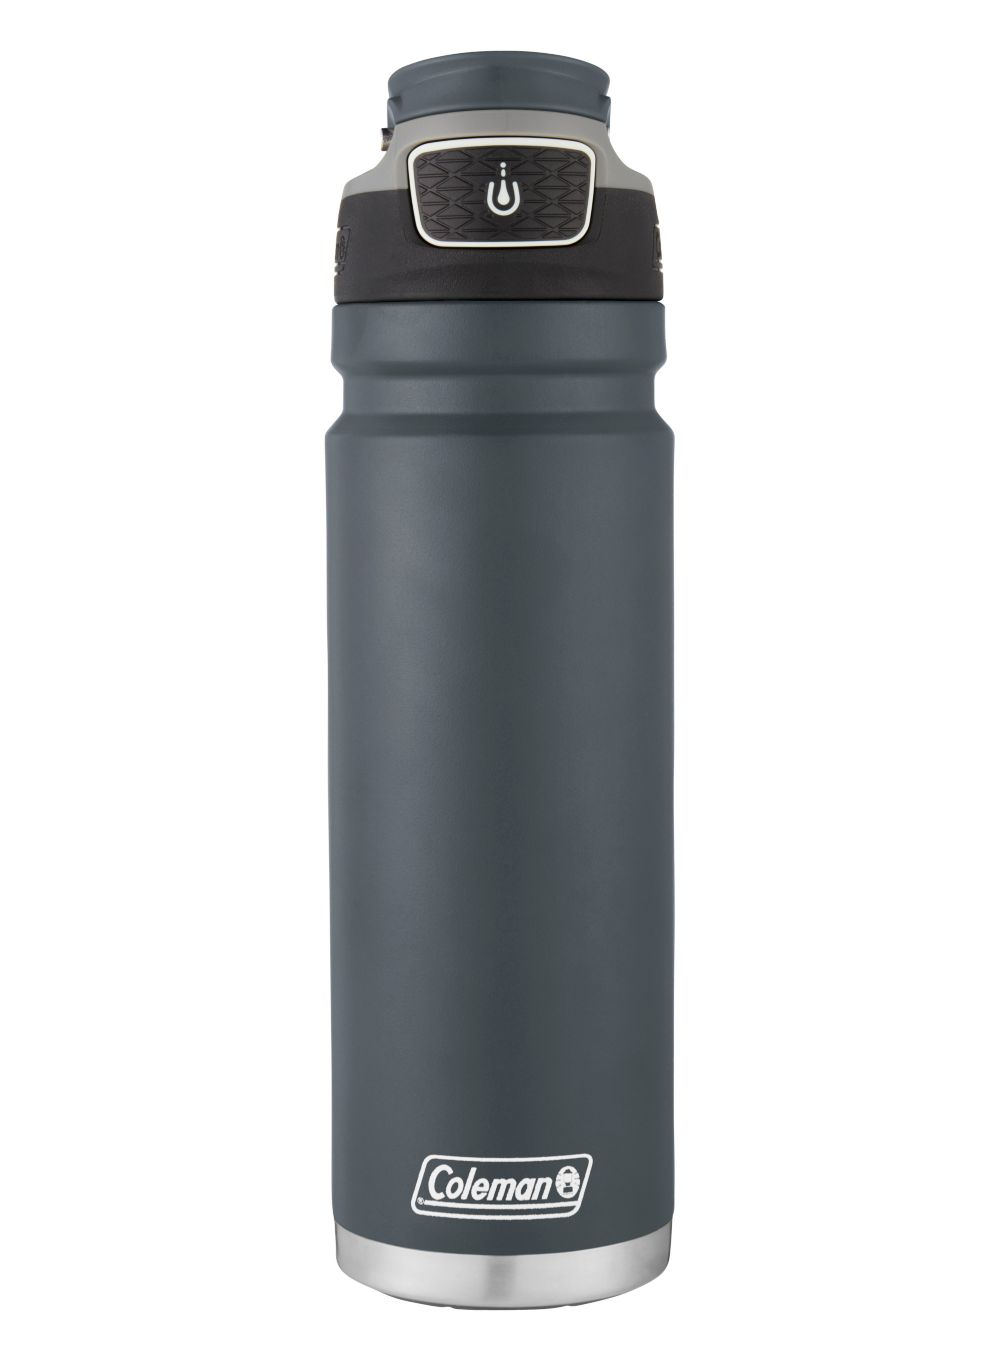 FreeFlow Stainless Steel AUTOSEAL Insulated Water Bottle 24oz